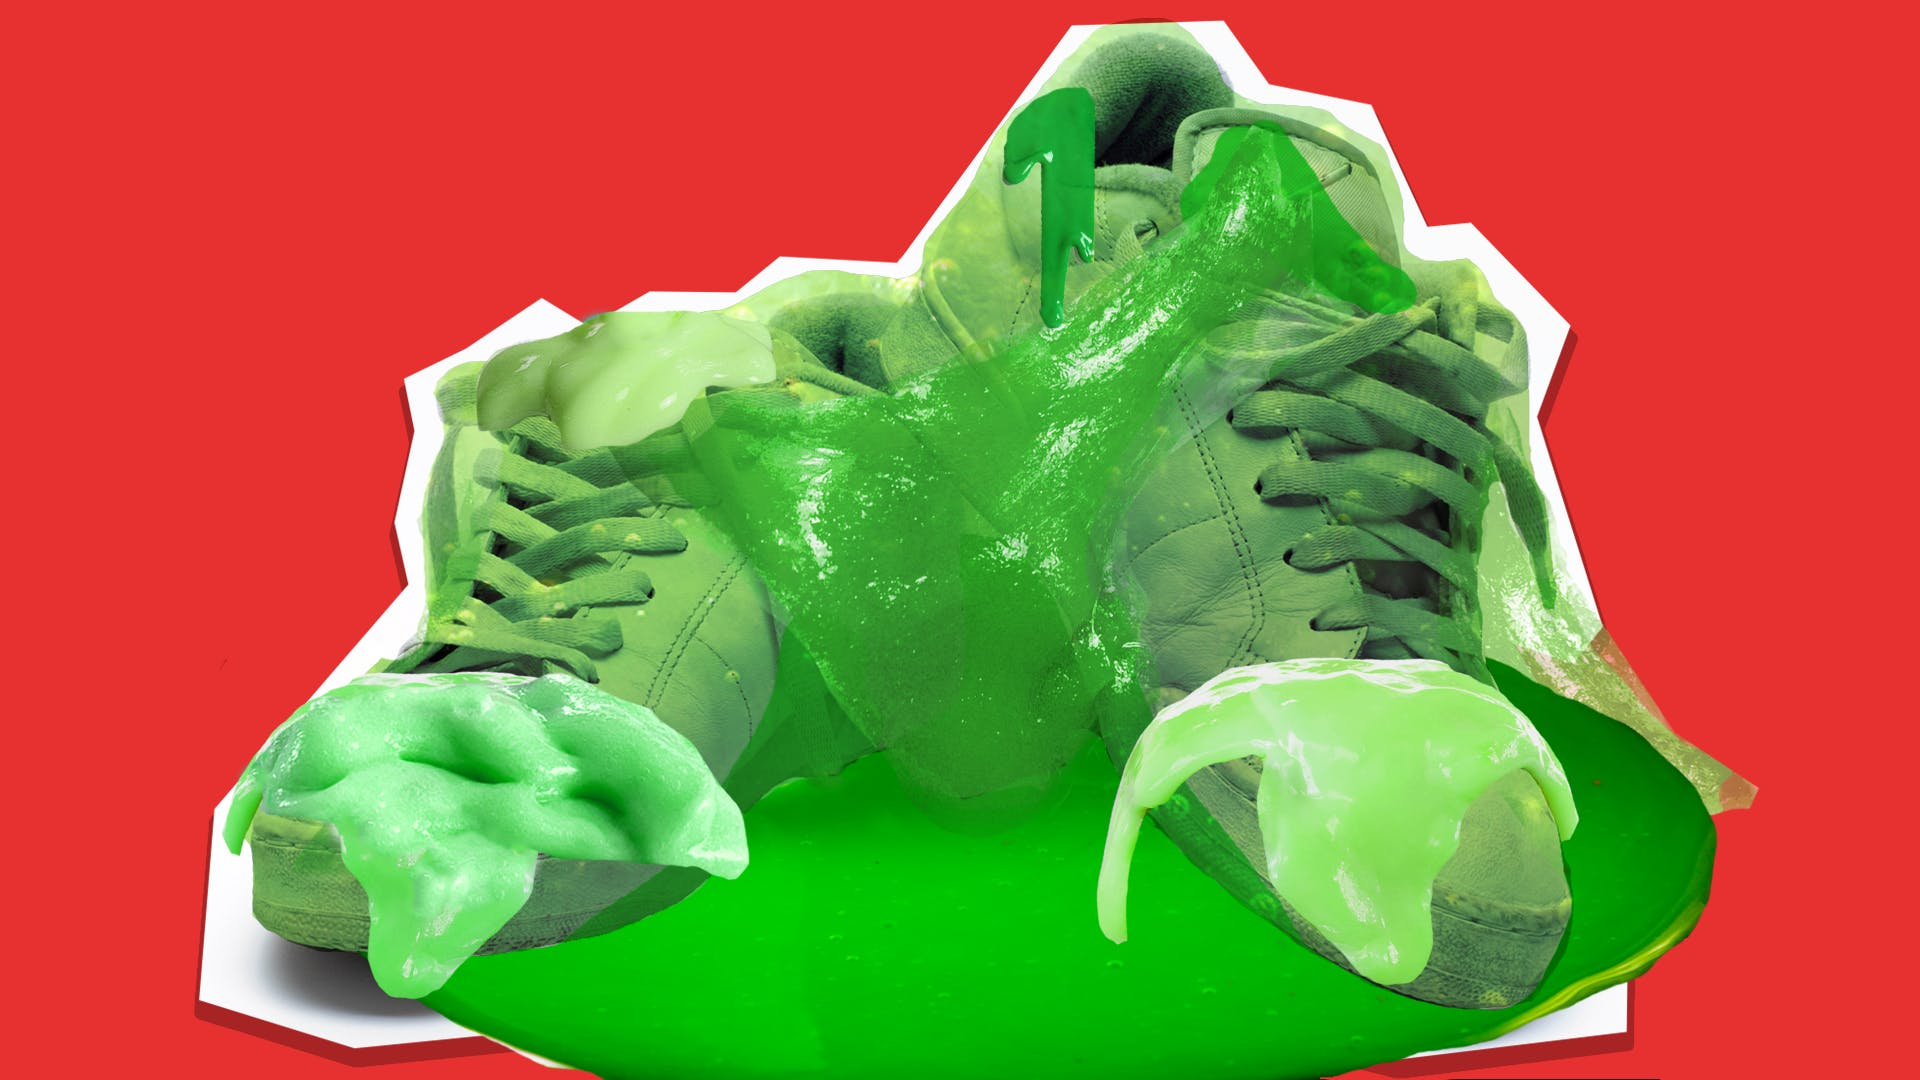 shoes covered in slime